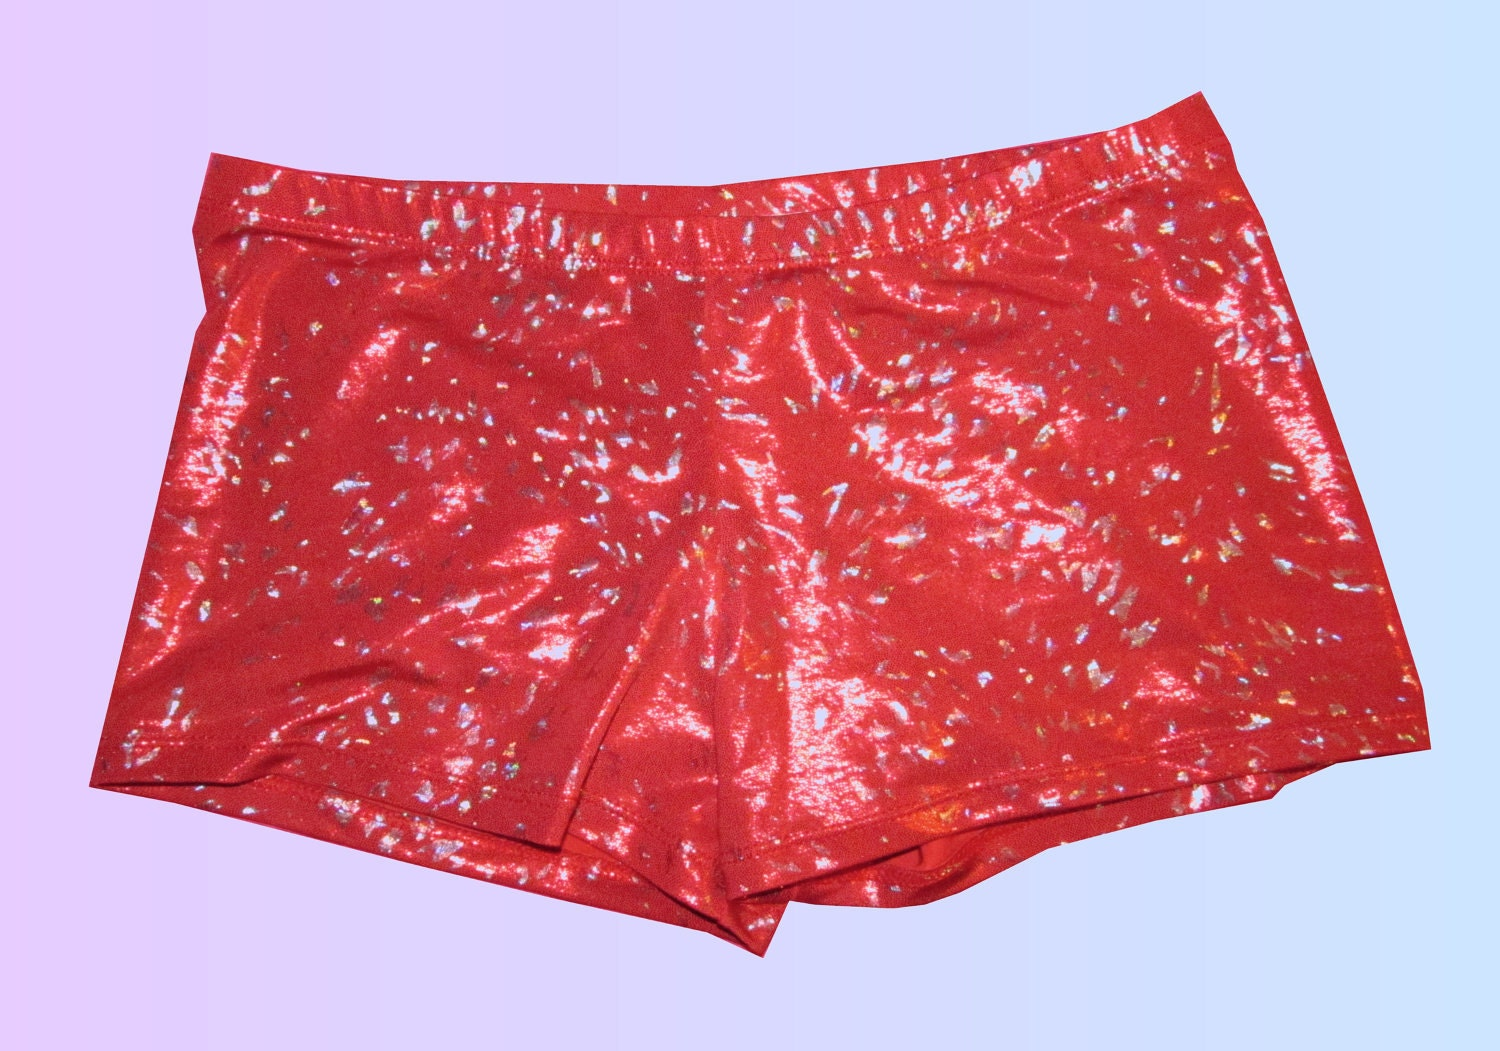 We are specializing in high quality Spandex fabric with a wide variety of collection.